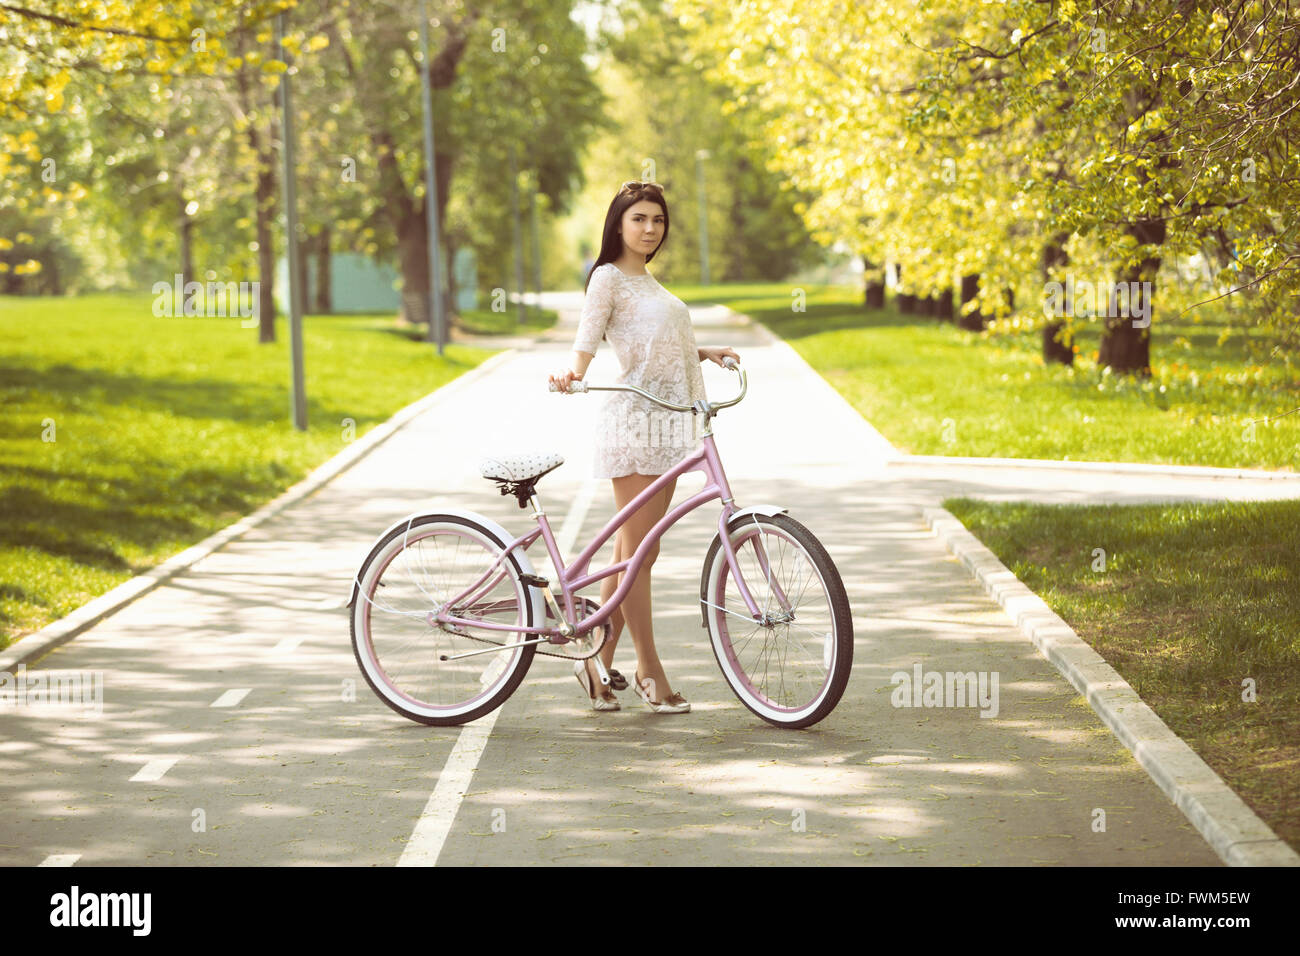 Young brunette girl in sundress riding a bicycle in green park at bright spring or summer day. Leisure time, good - Stock Image